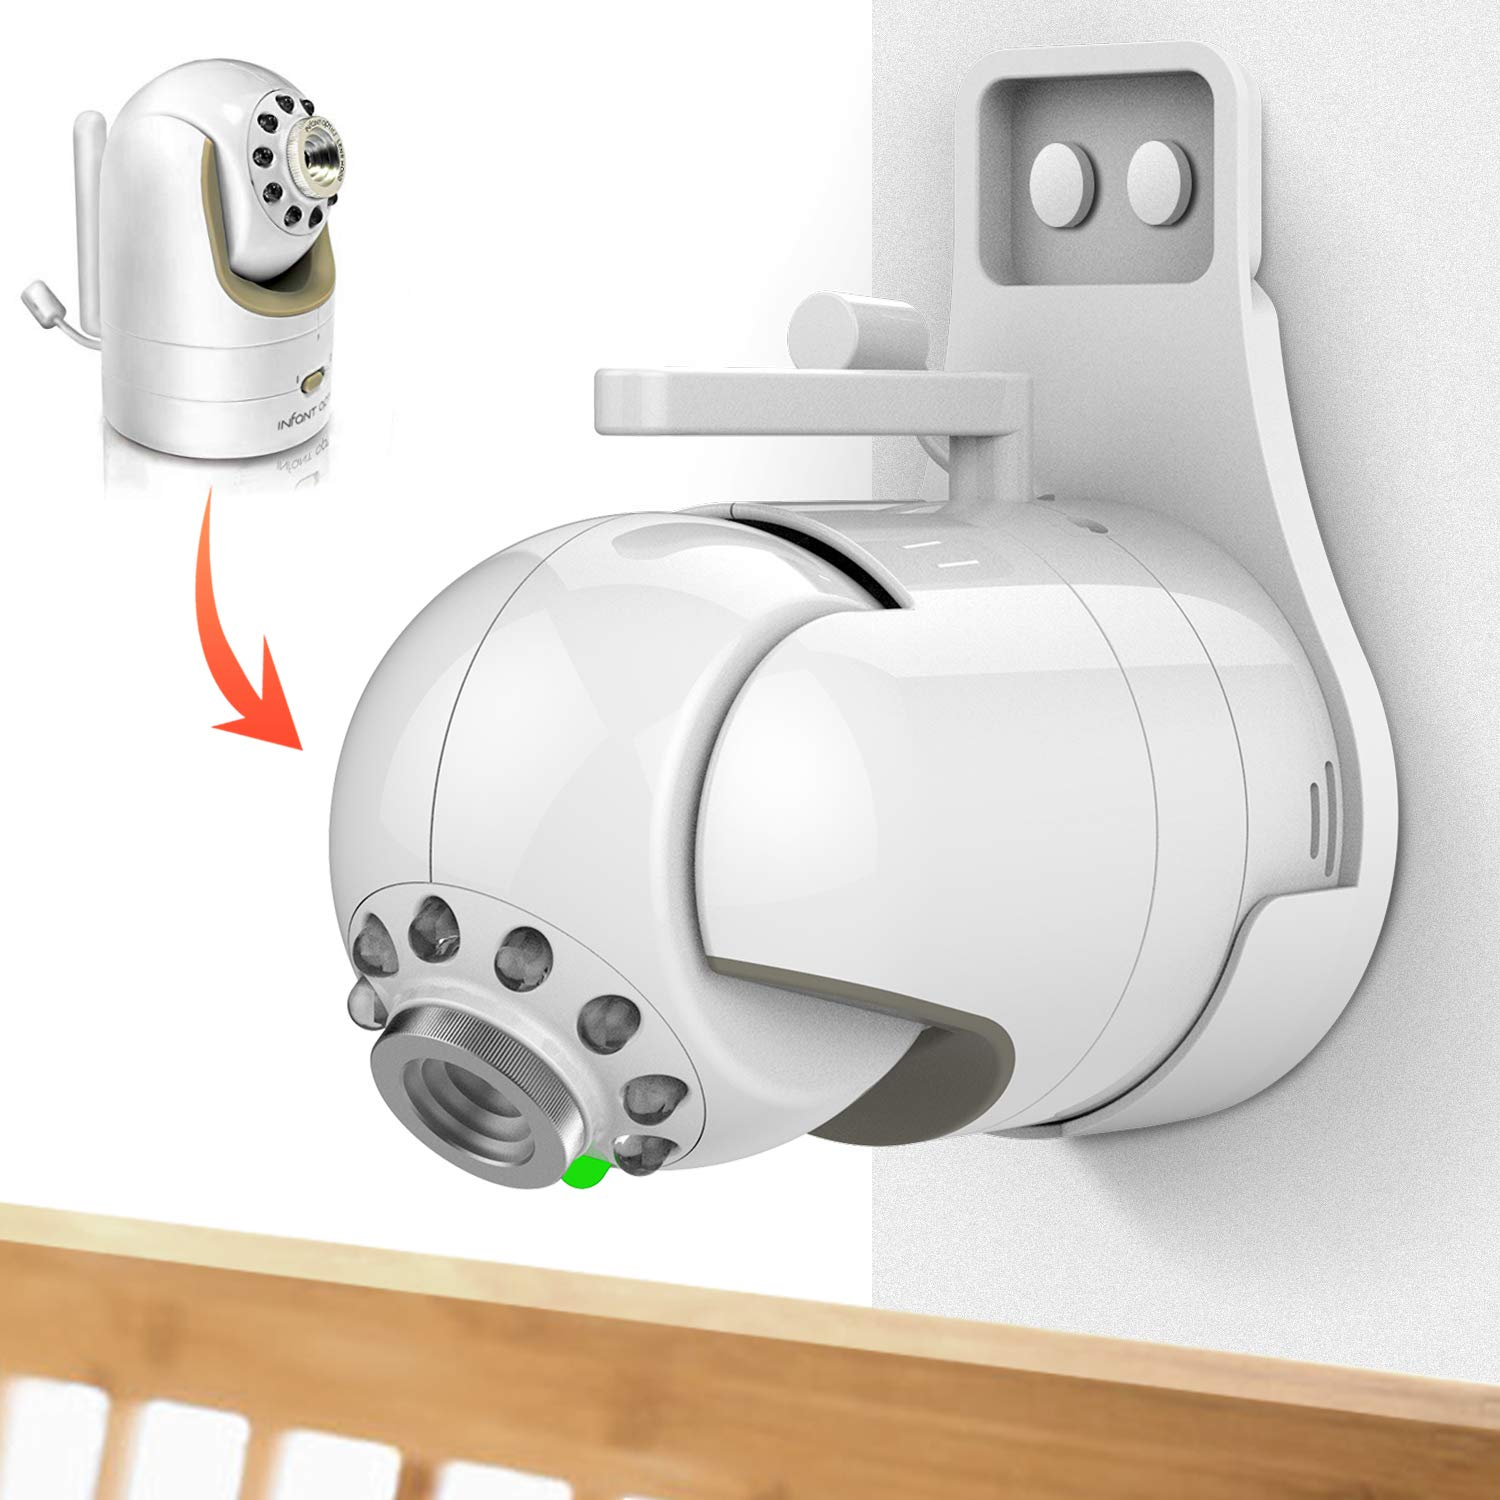 Amazon.com : Infant Optics DXR-8 Video Baby Monitor with